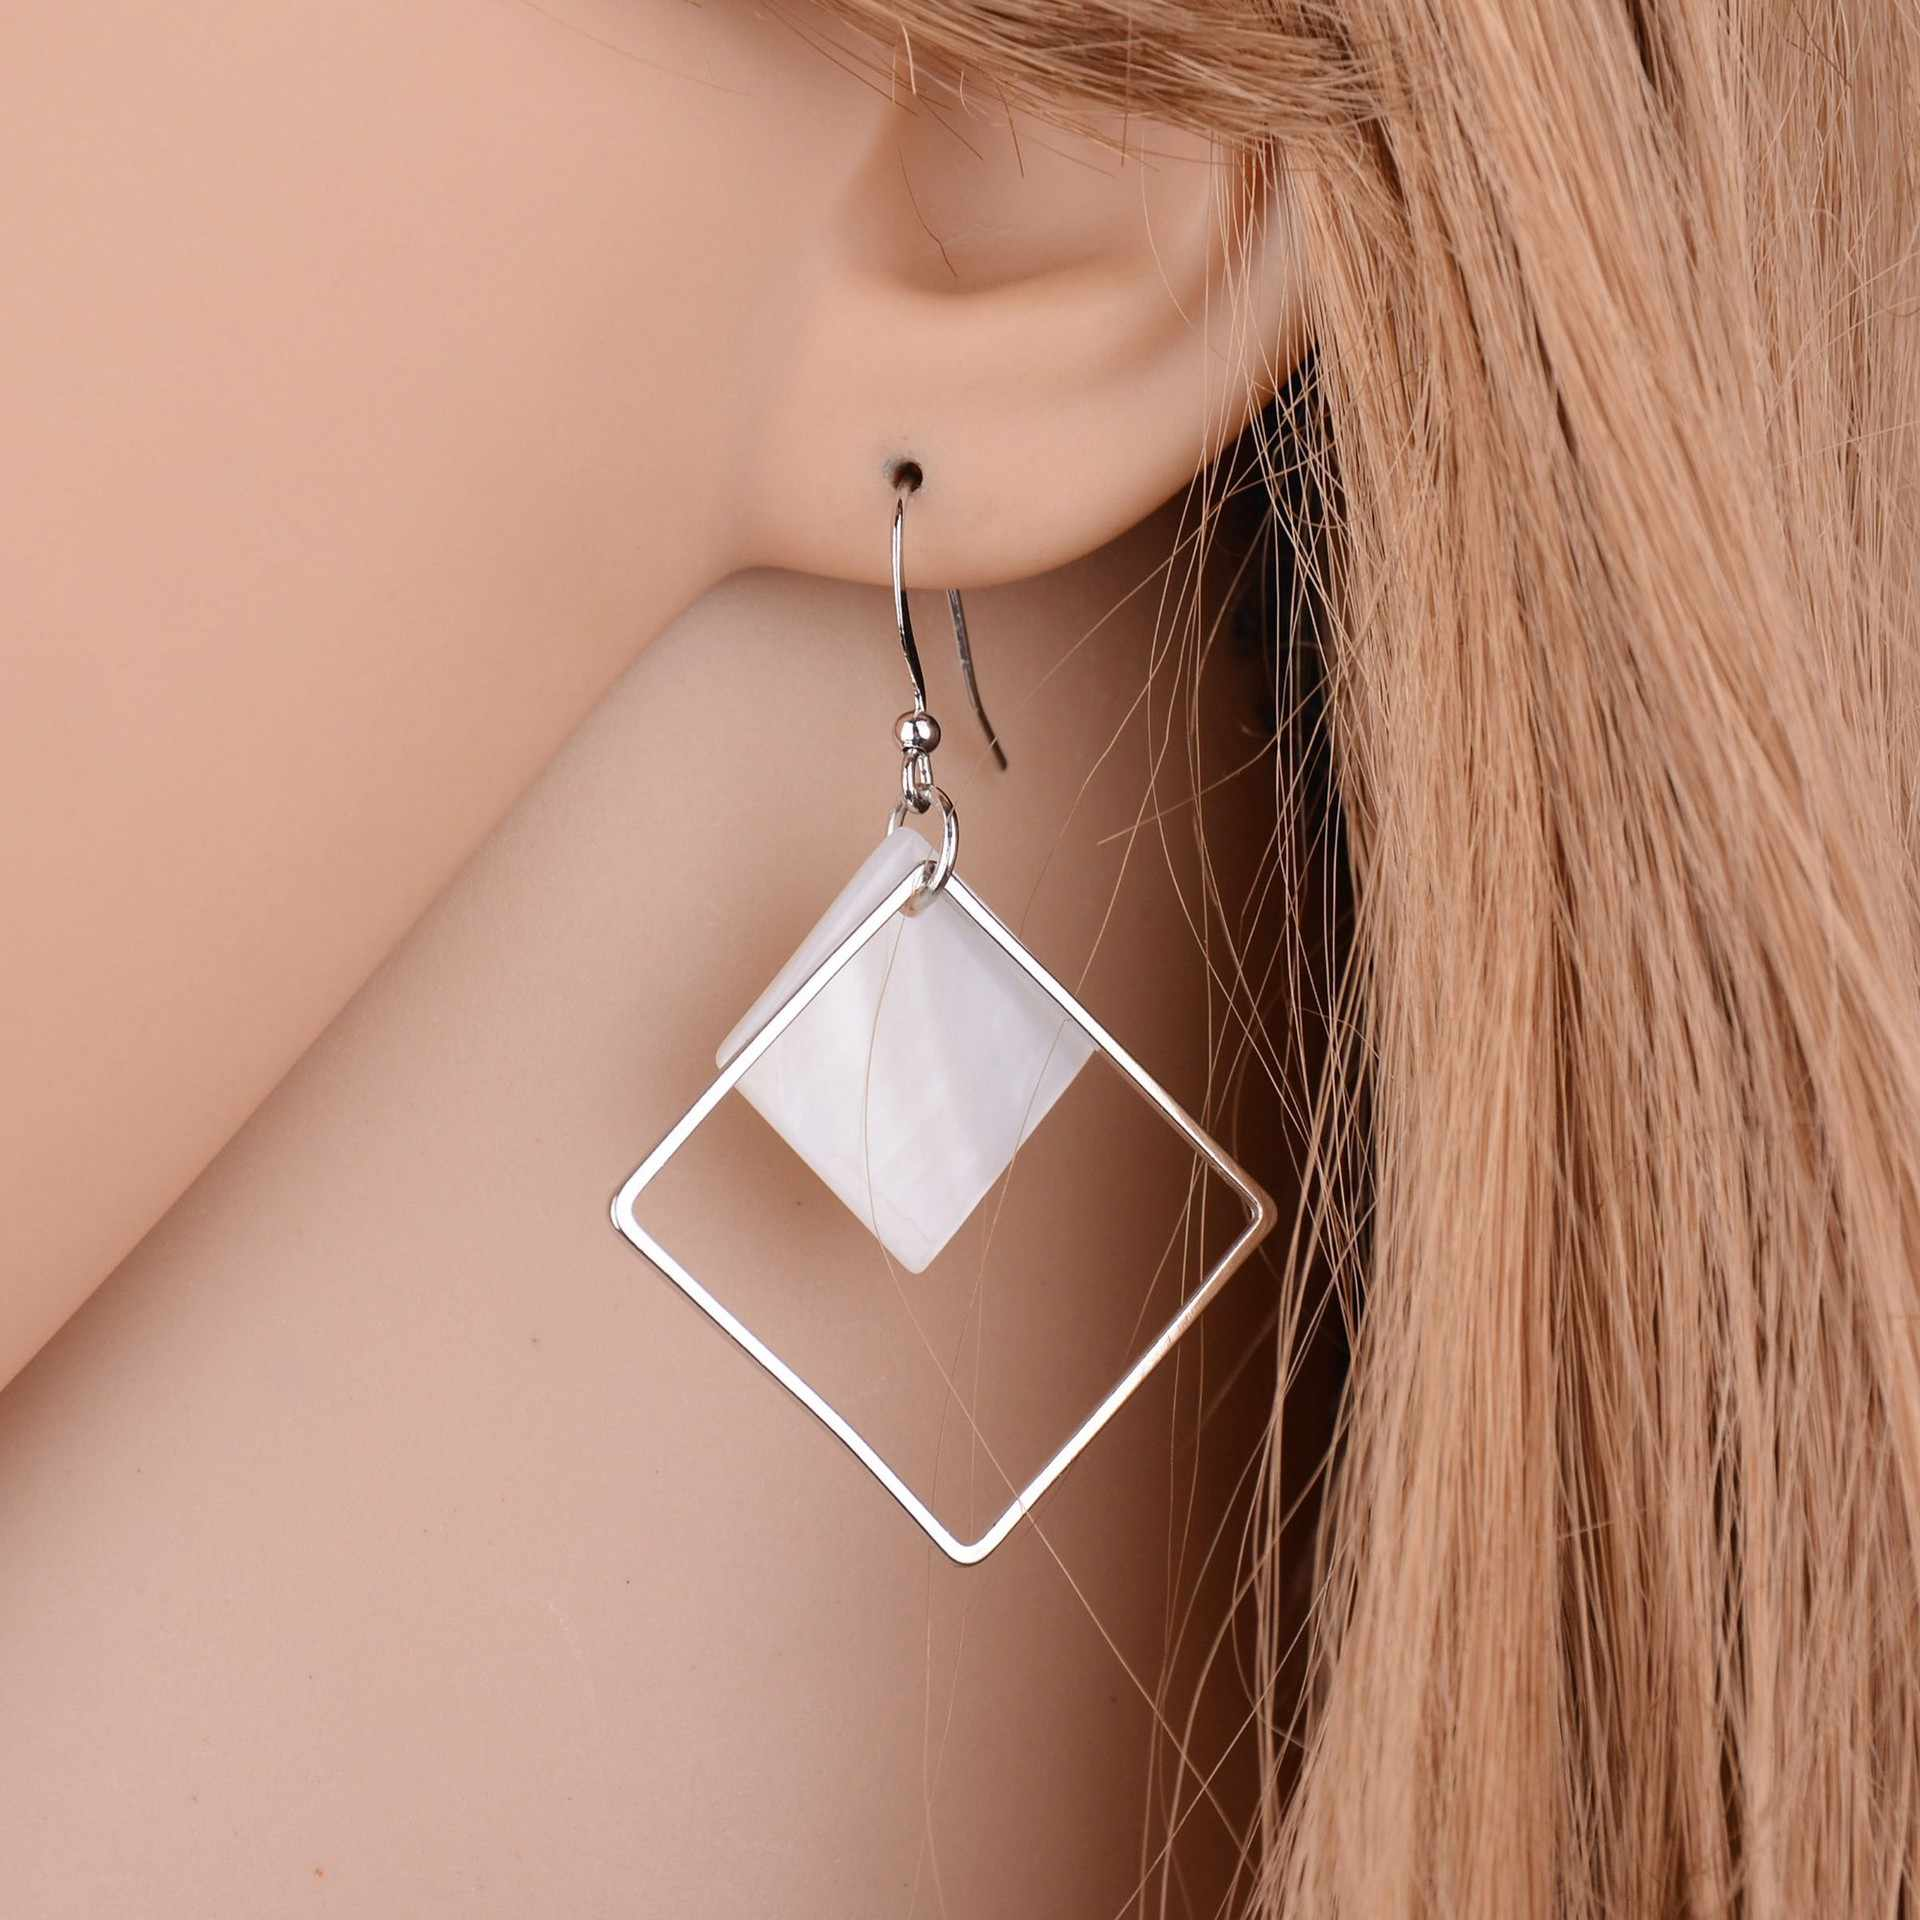 EK960 Minimalist Punk Wholesale Love Square White Shell Drop Earrings For Women Earings Jewelry Wedding Geometric oorbellen